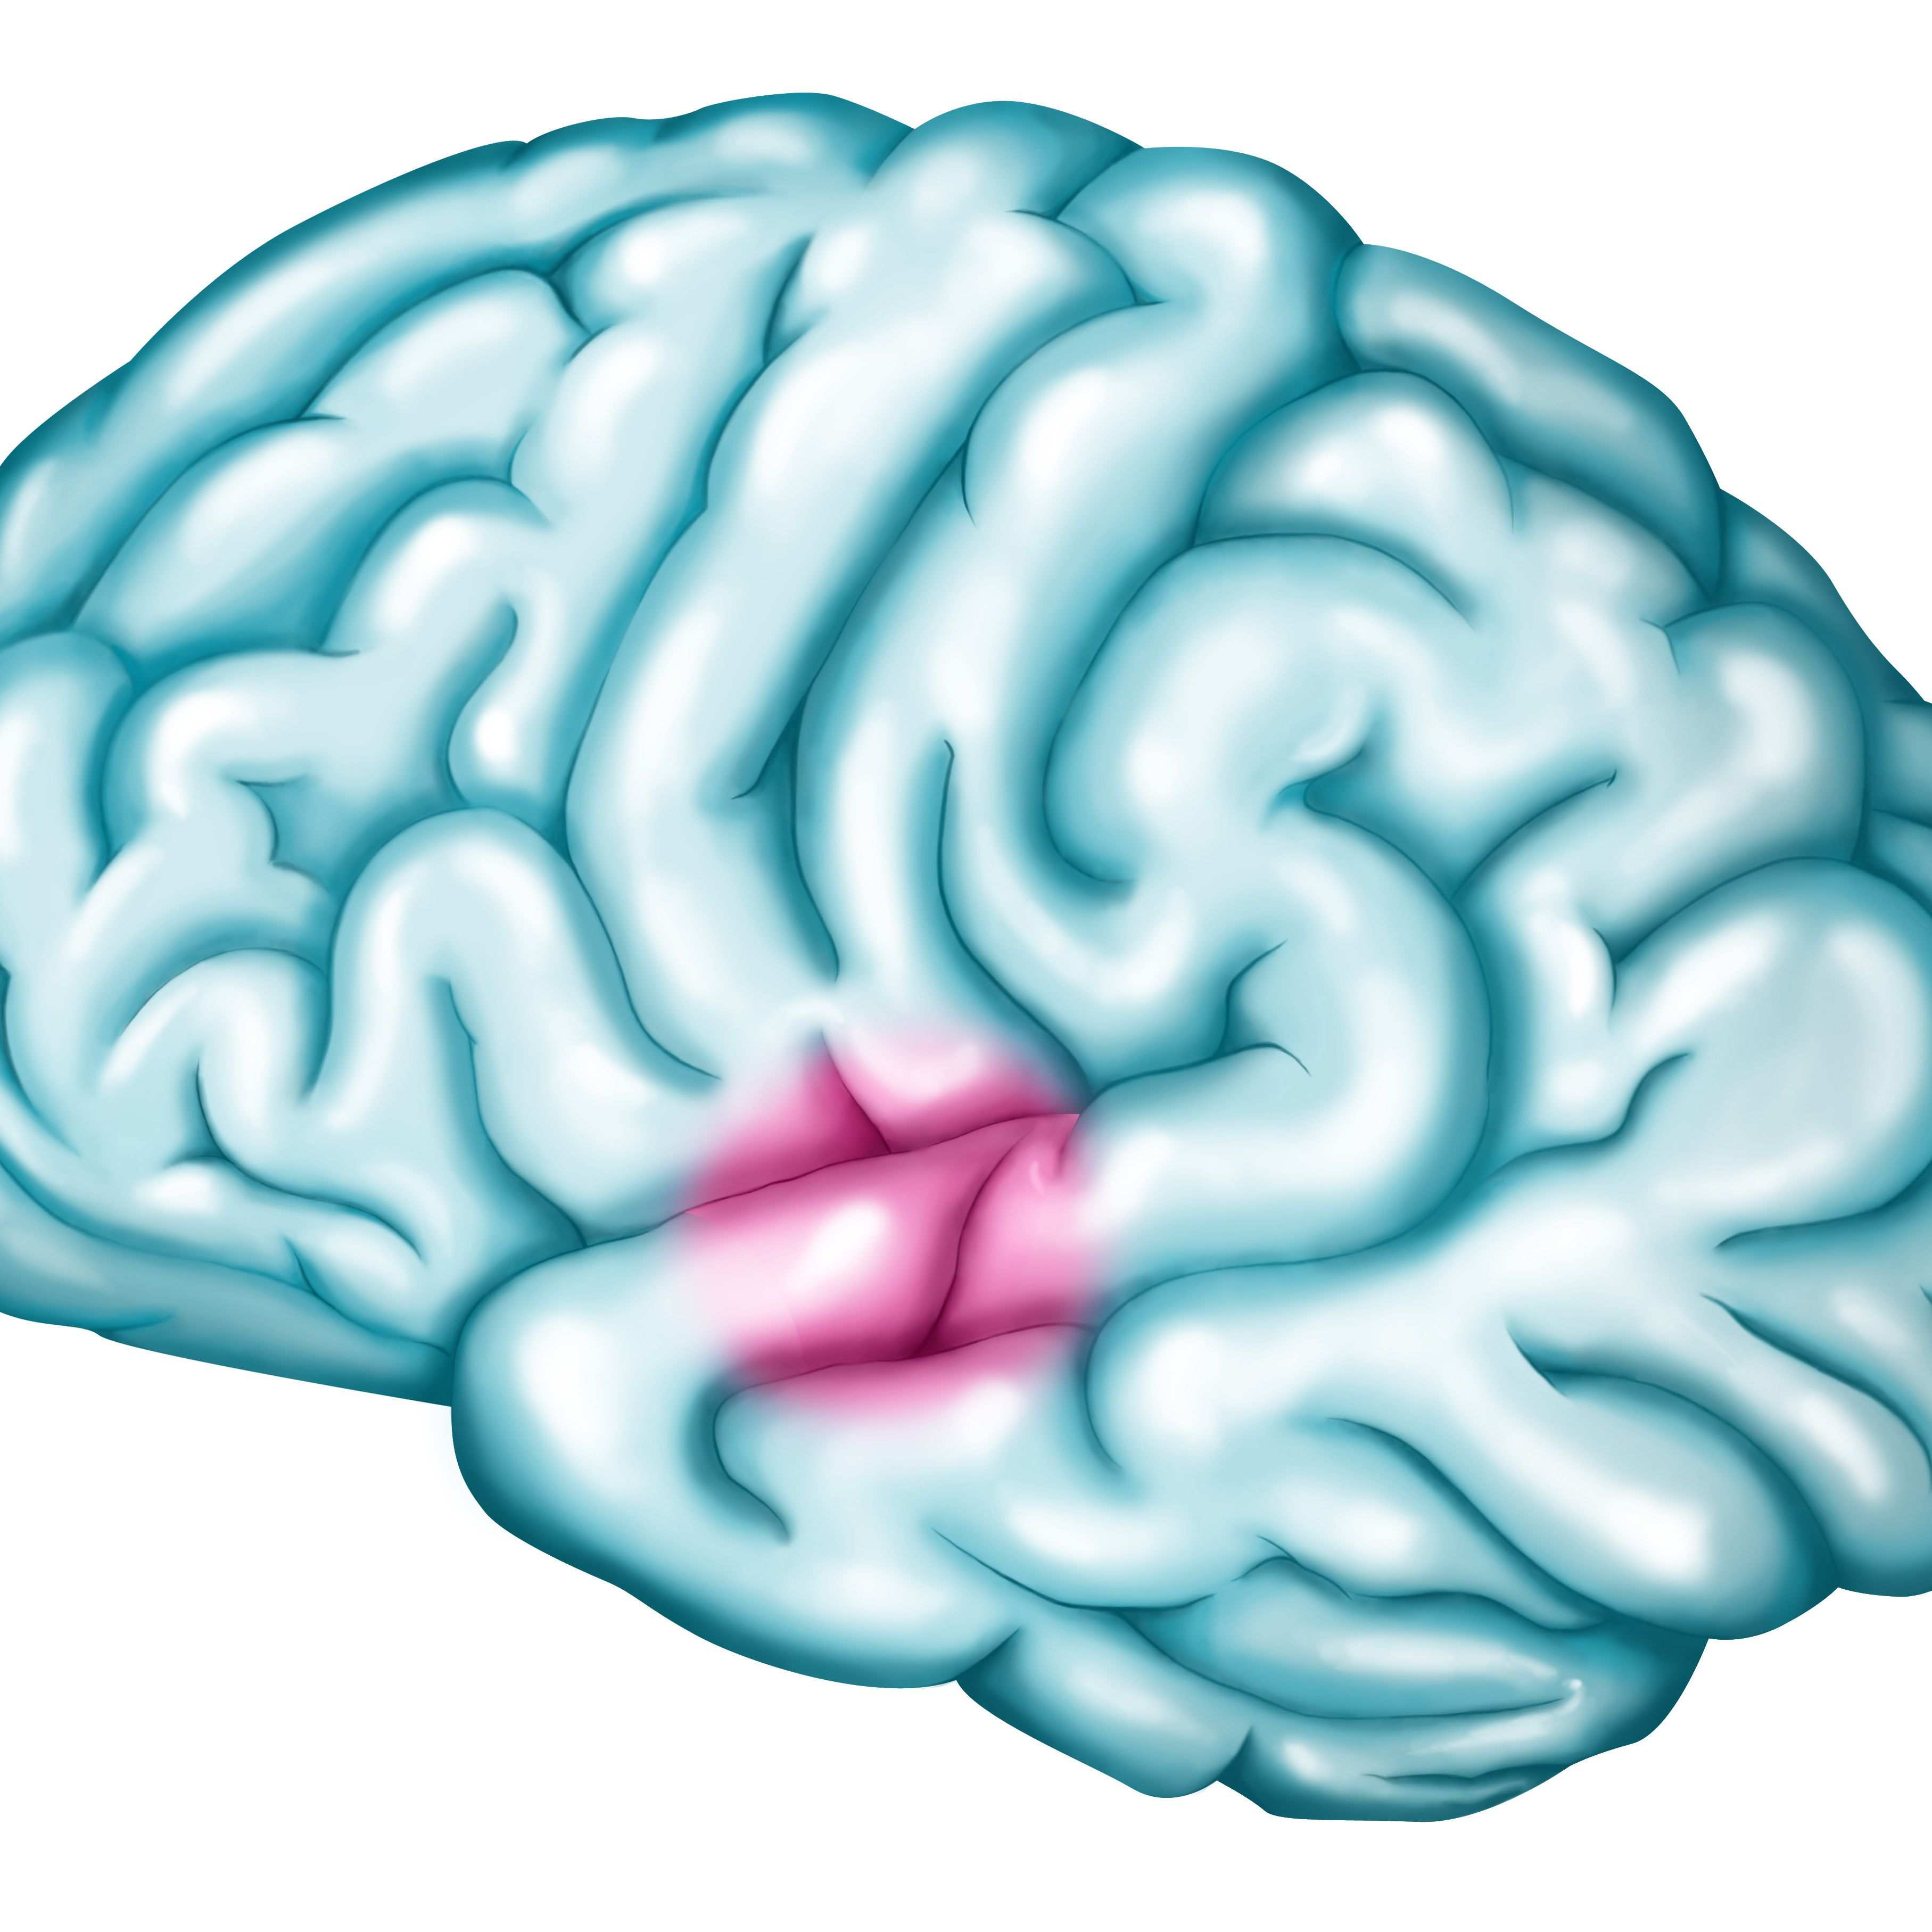 Wernicke s area location. Psychology clipart brain function